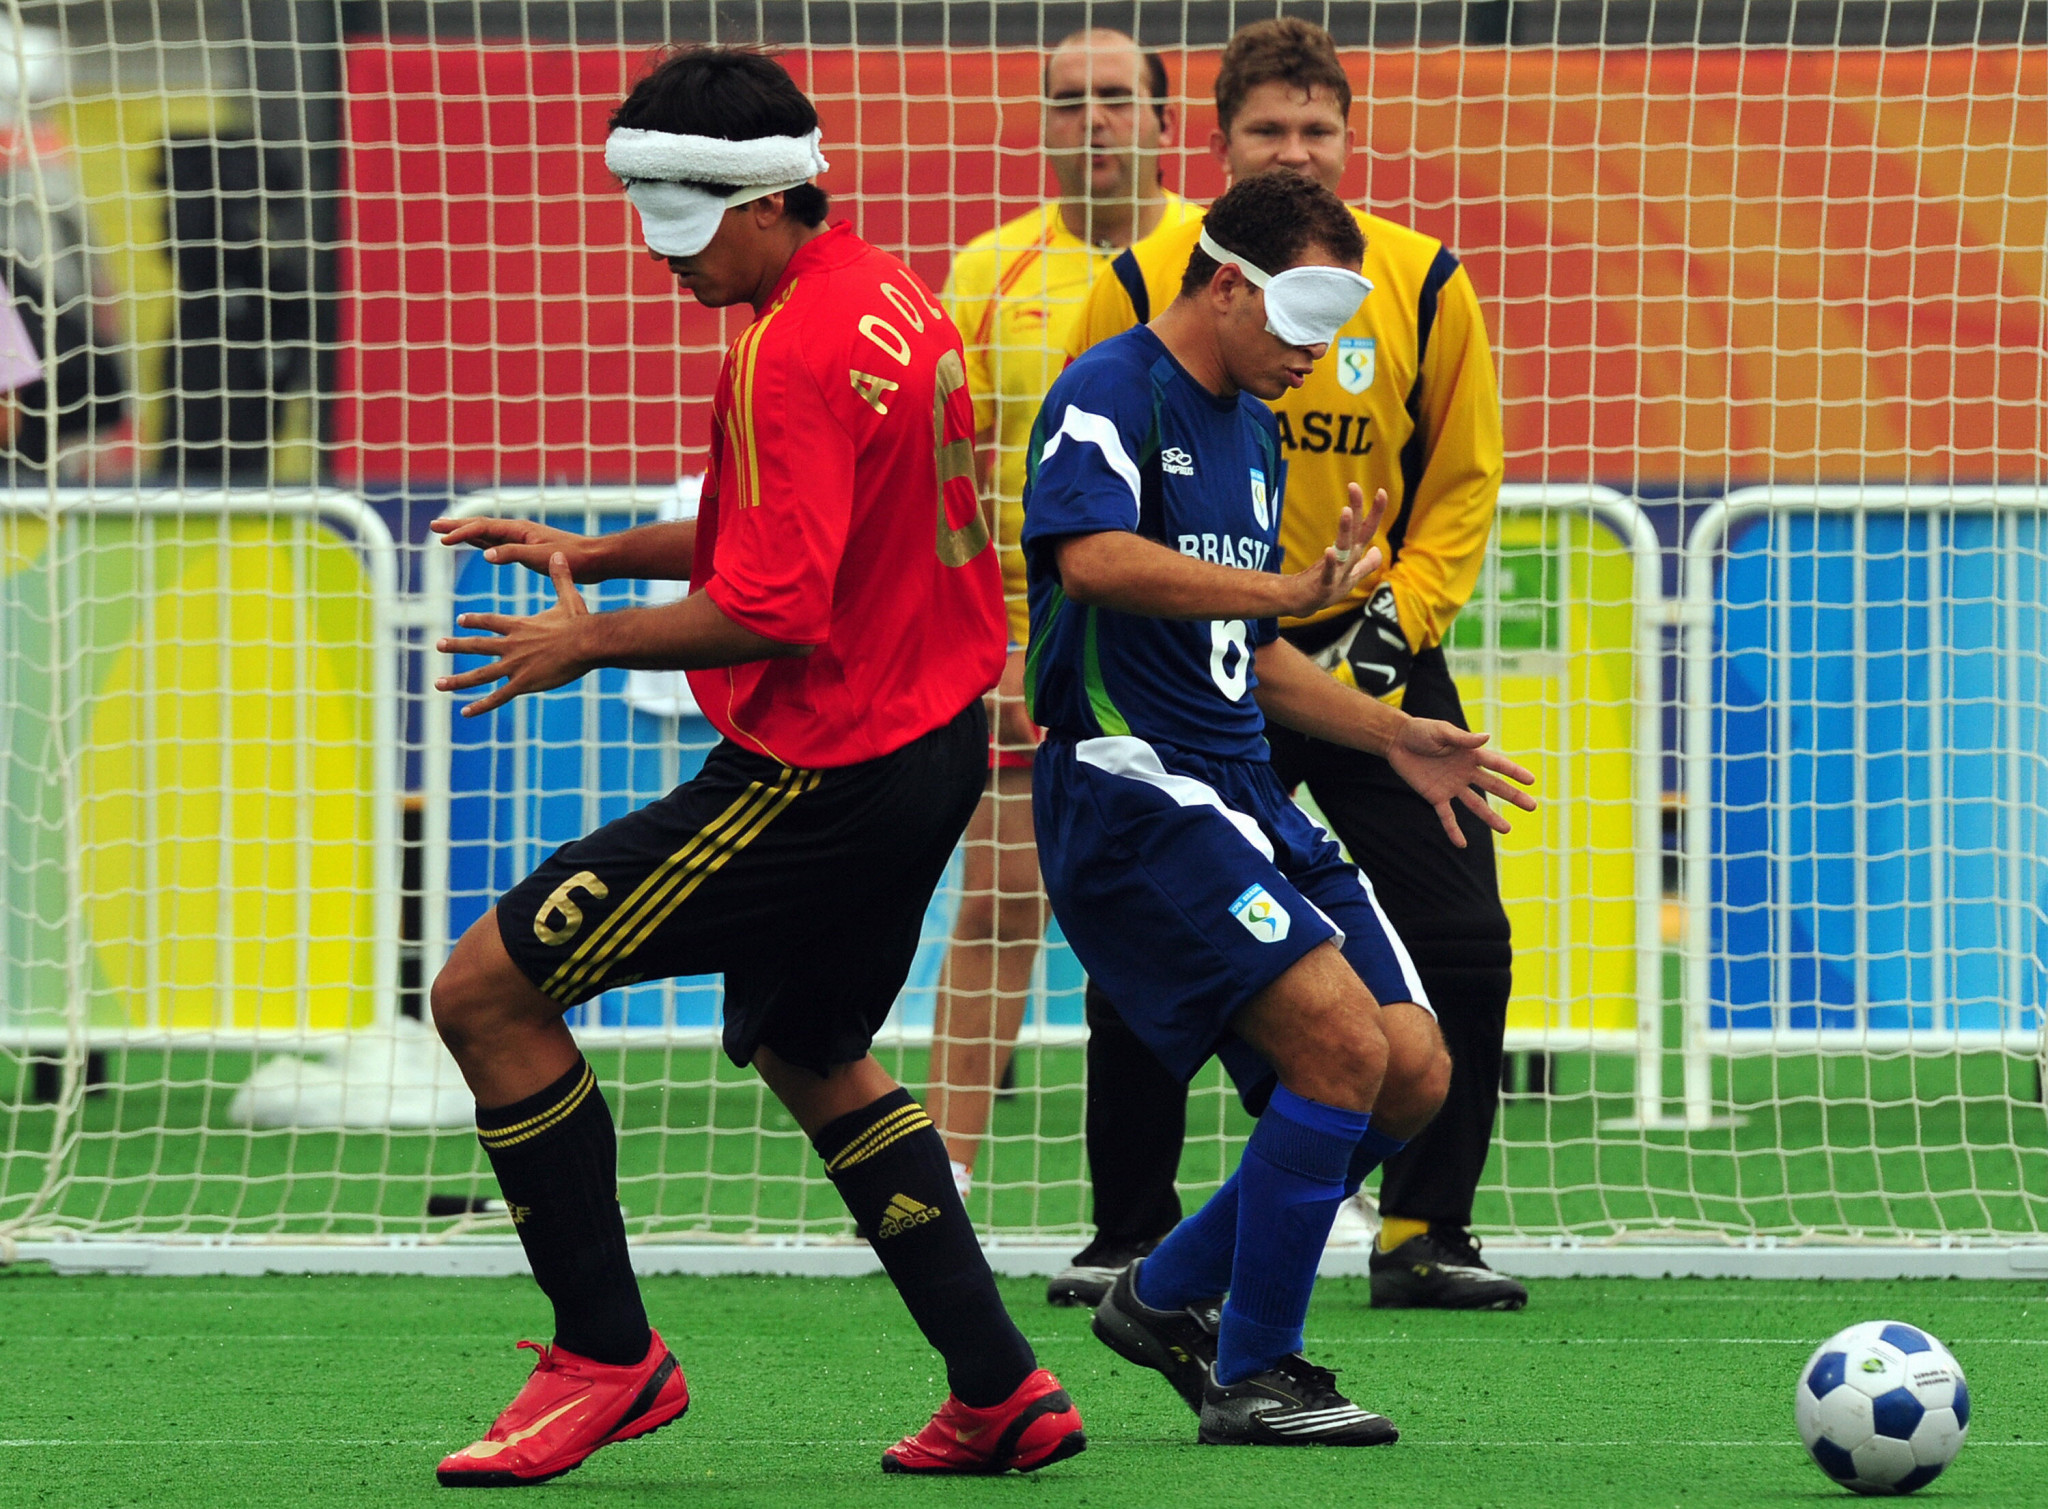 Spain are targeting ending Brazil's domination of blind football by winning the World Championships on home soil ©Getty Images